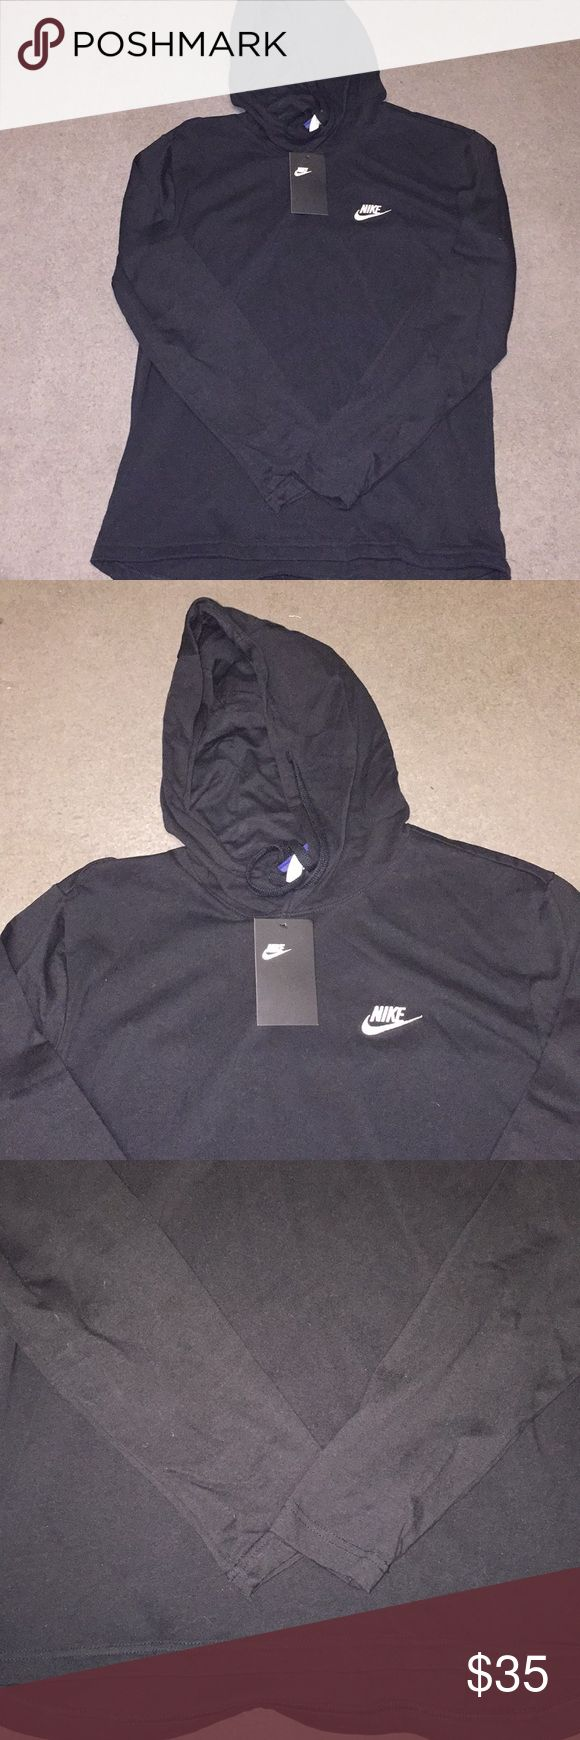 NIKE NSW JERSEY PULLOVER HOODIE All black brand new tags on never worn very light weight but super comfy ! SizE Medium for men Nike Shirts Sweatshirts & Hoodies